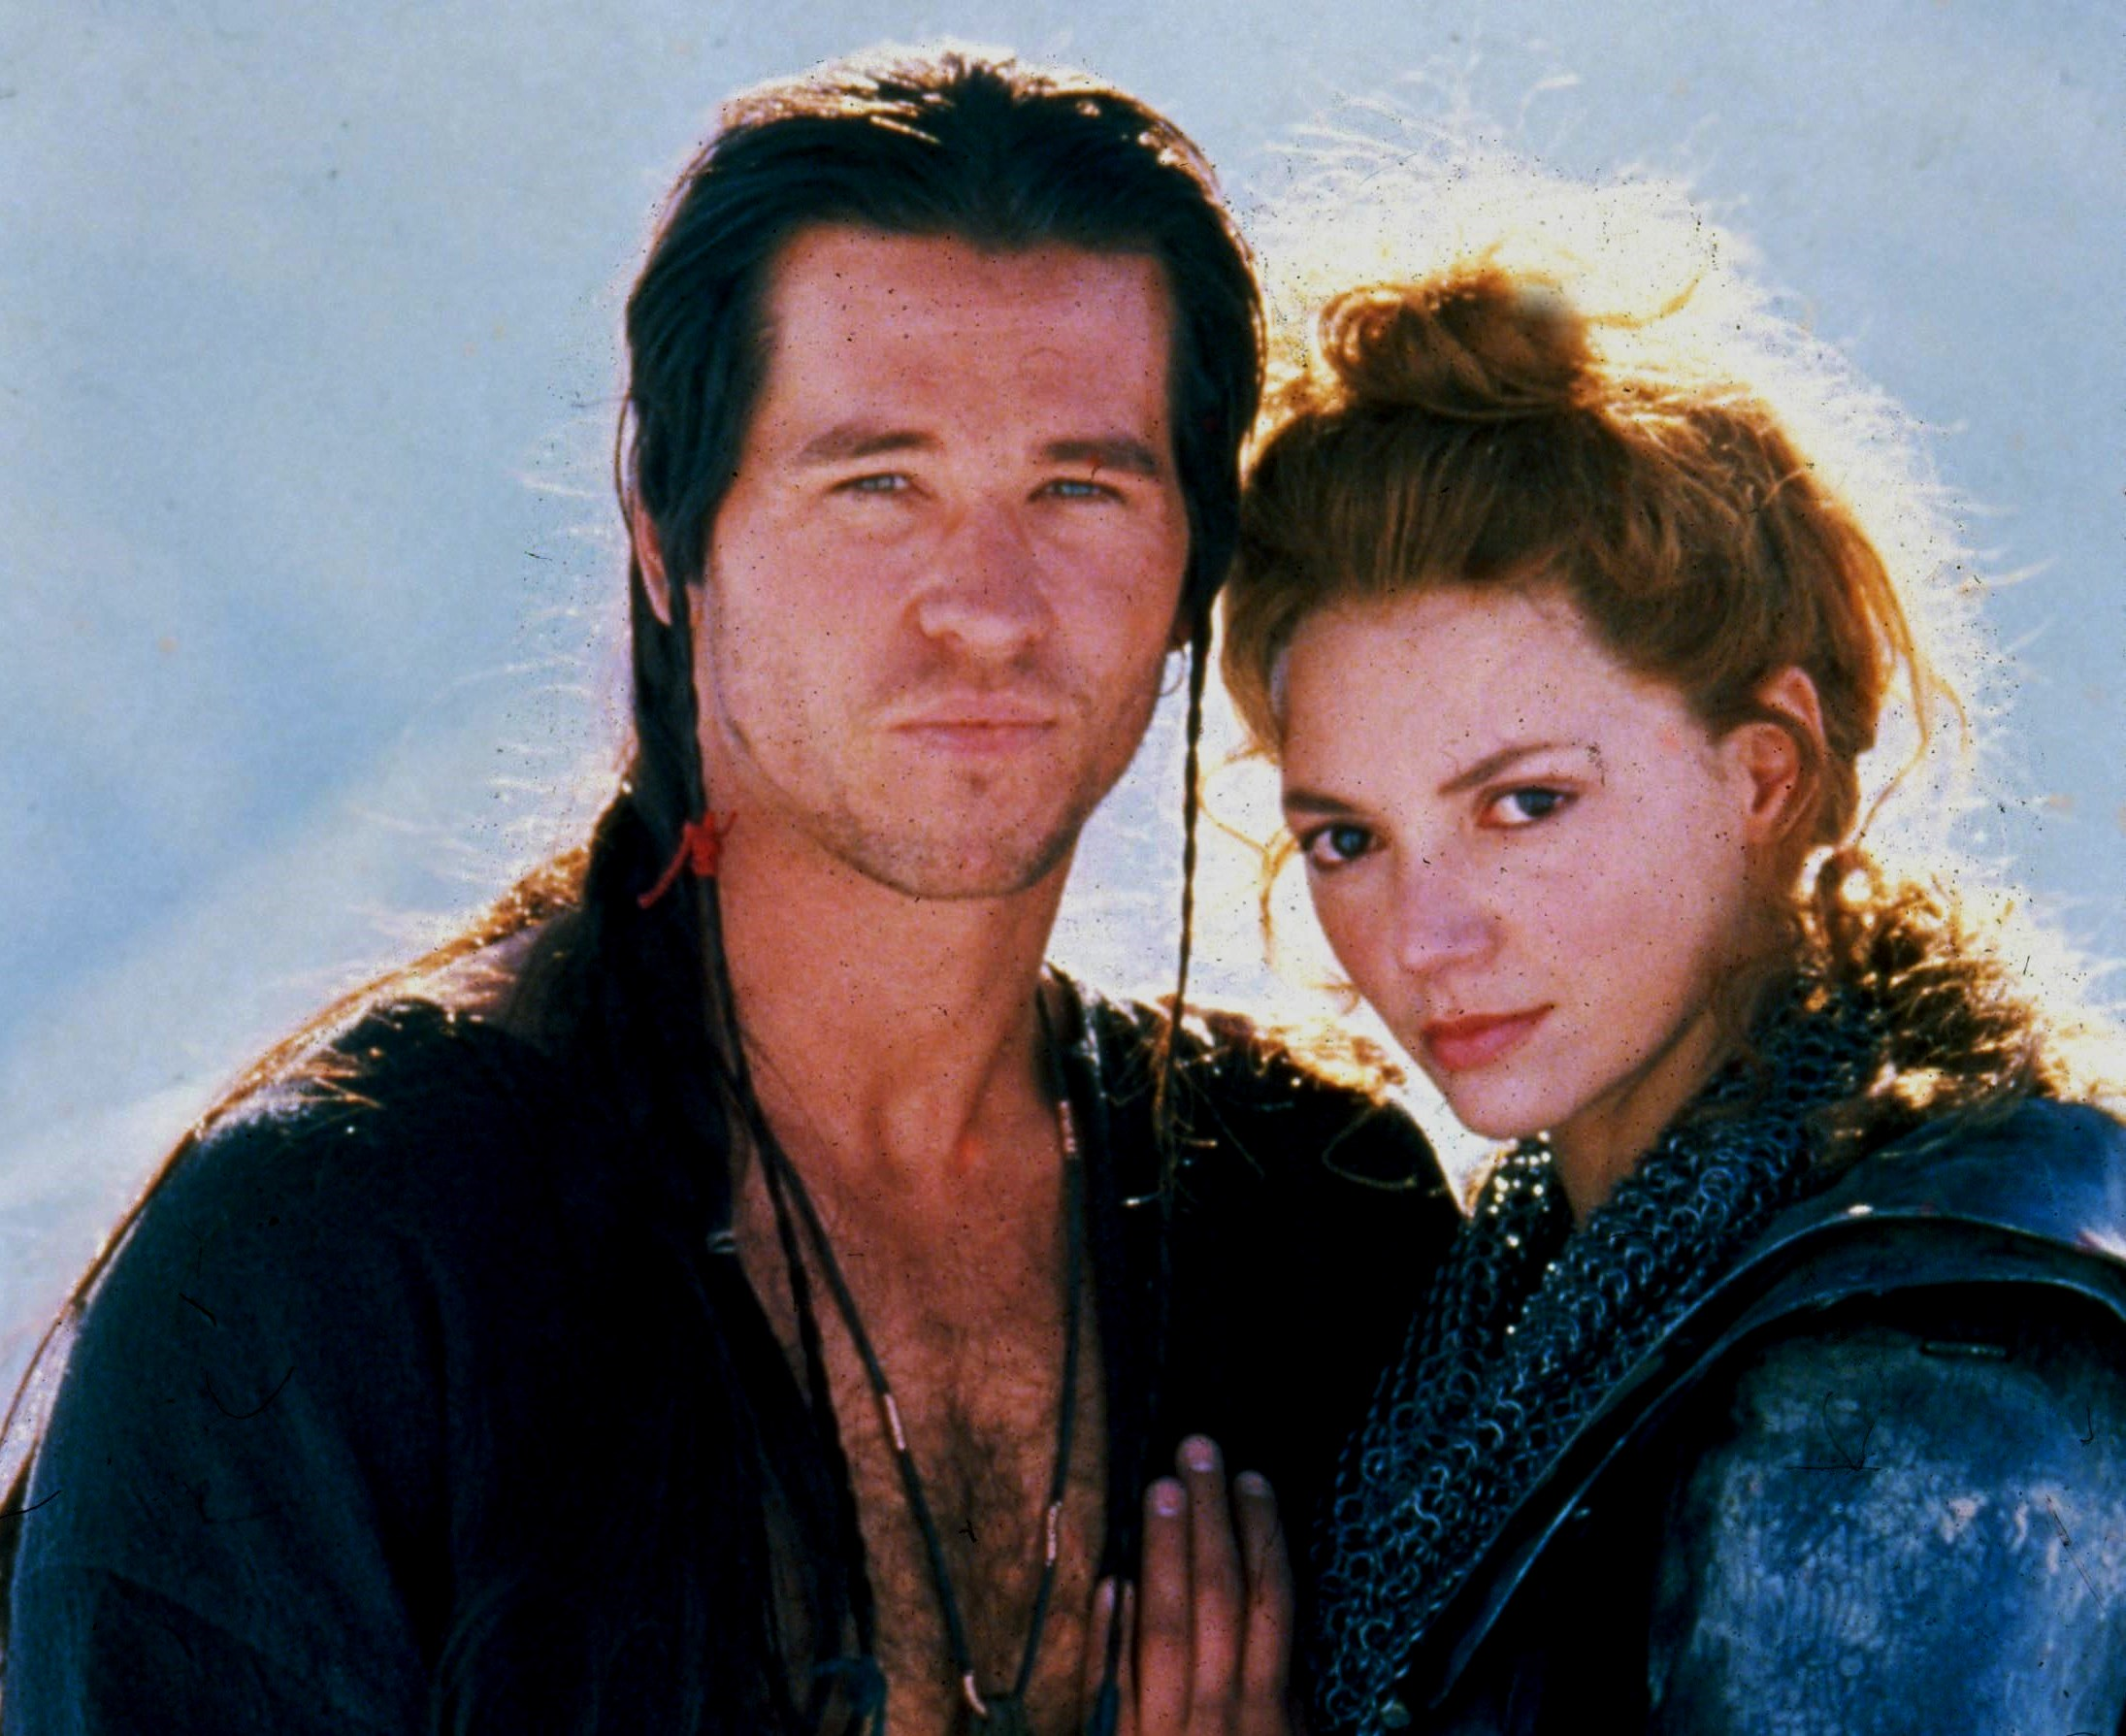 Madmartigan (Val Kilmer) and Sorsha (Joanne Whalley) in Willow (1988)